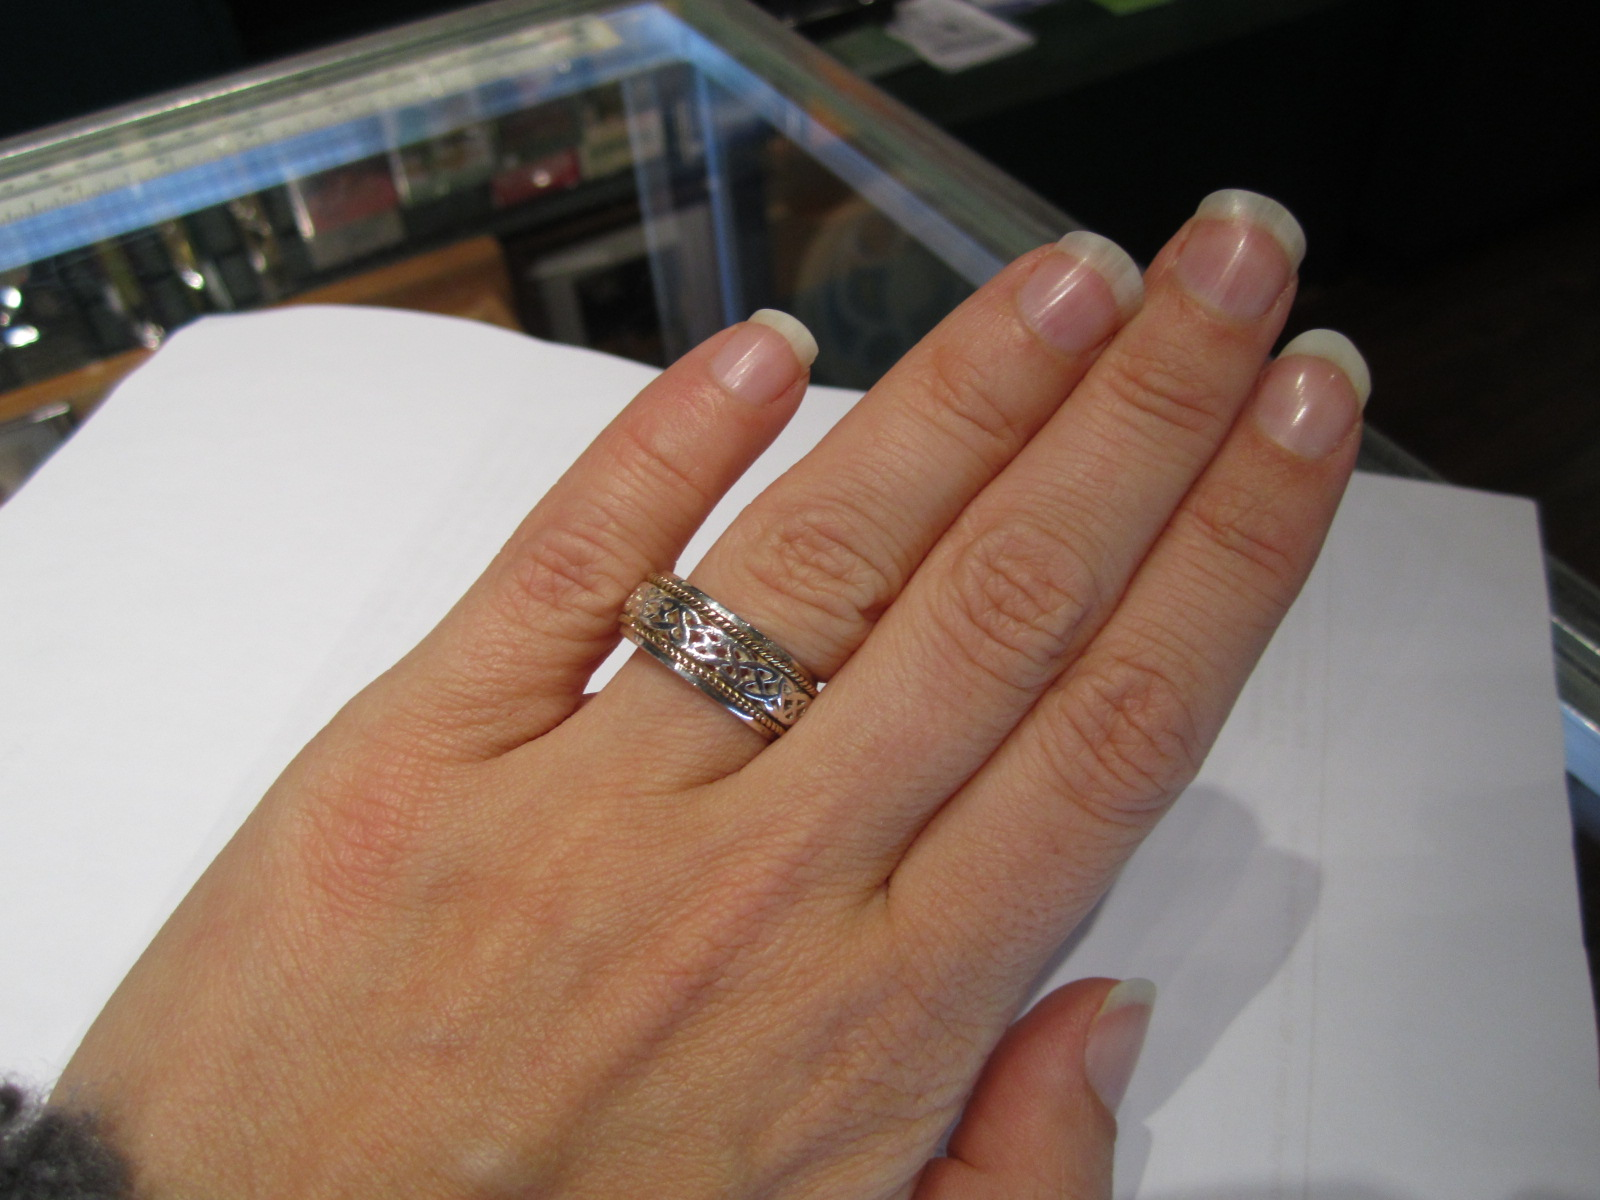 love lesbian wedding bands This is the ring we ve chosen although this one is not in my size We couldn t be happier it s beautiful Celtic and best of all the total price will